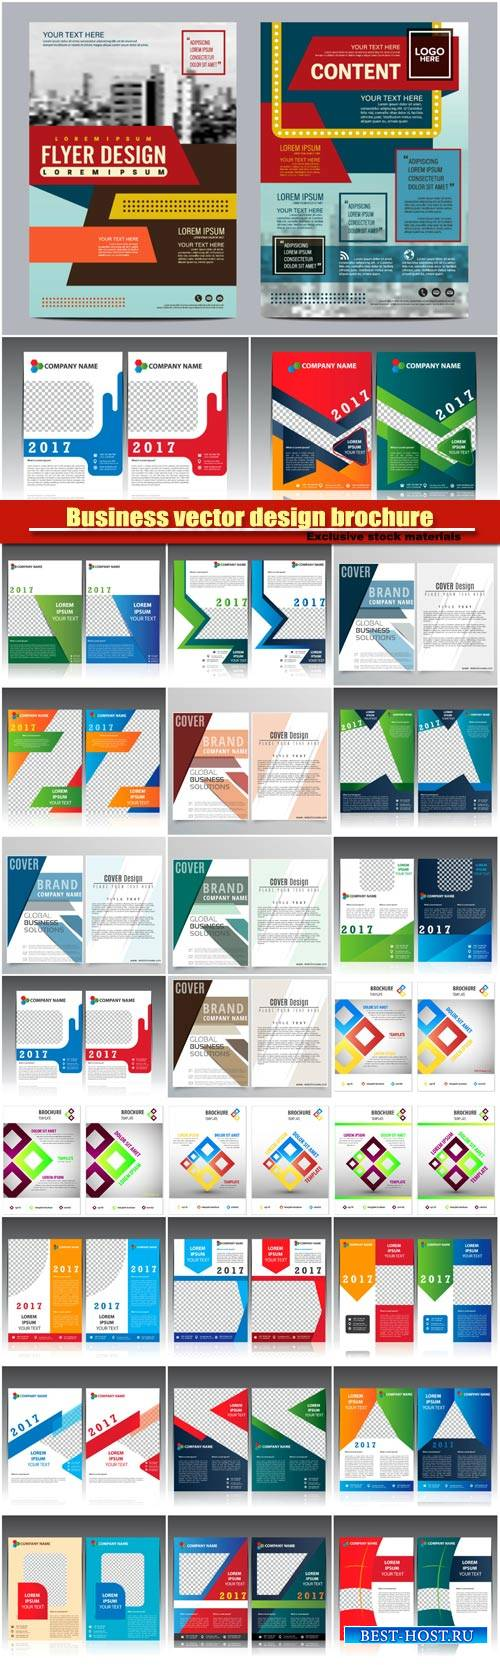 Business vector design brochure, creative flyer template